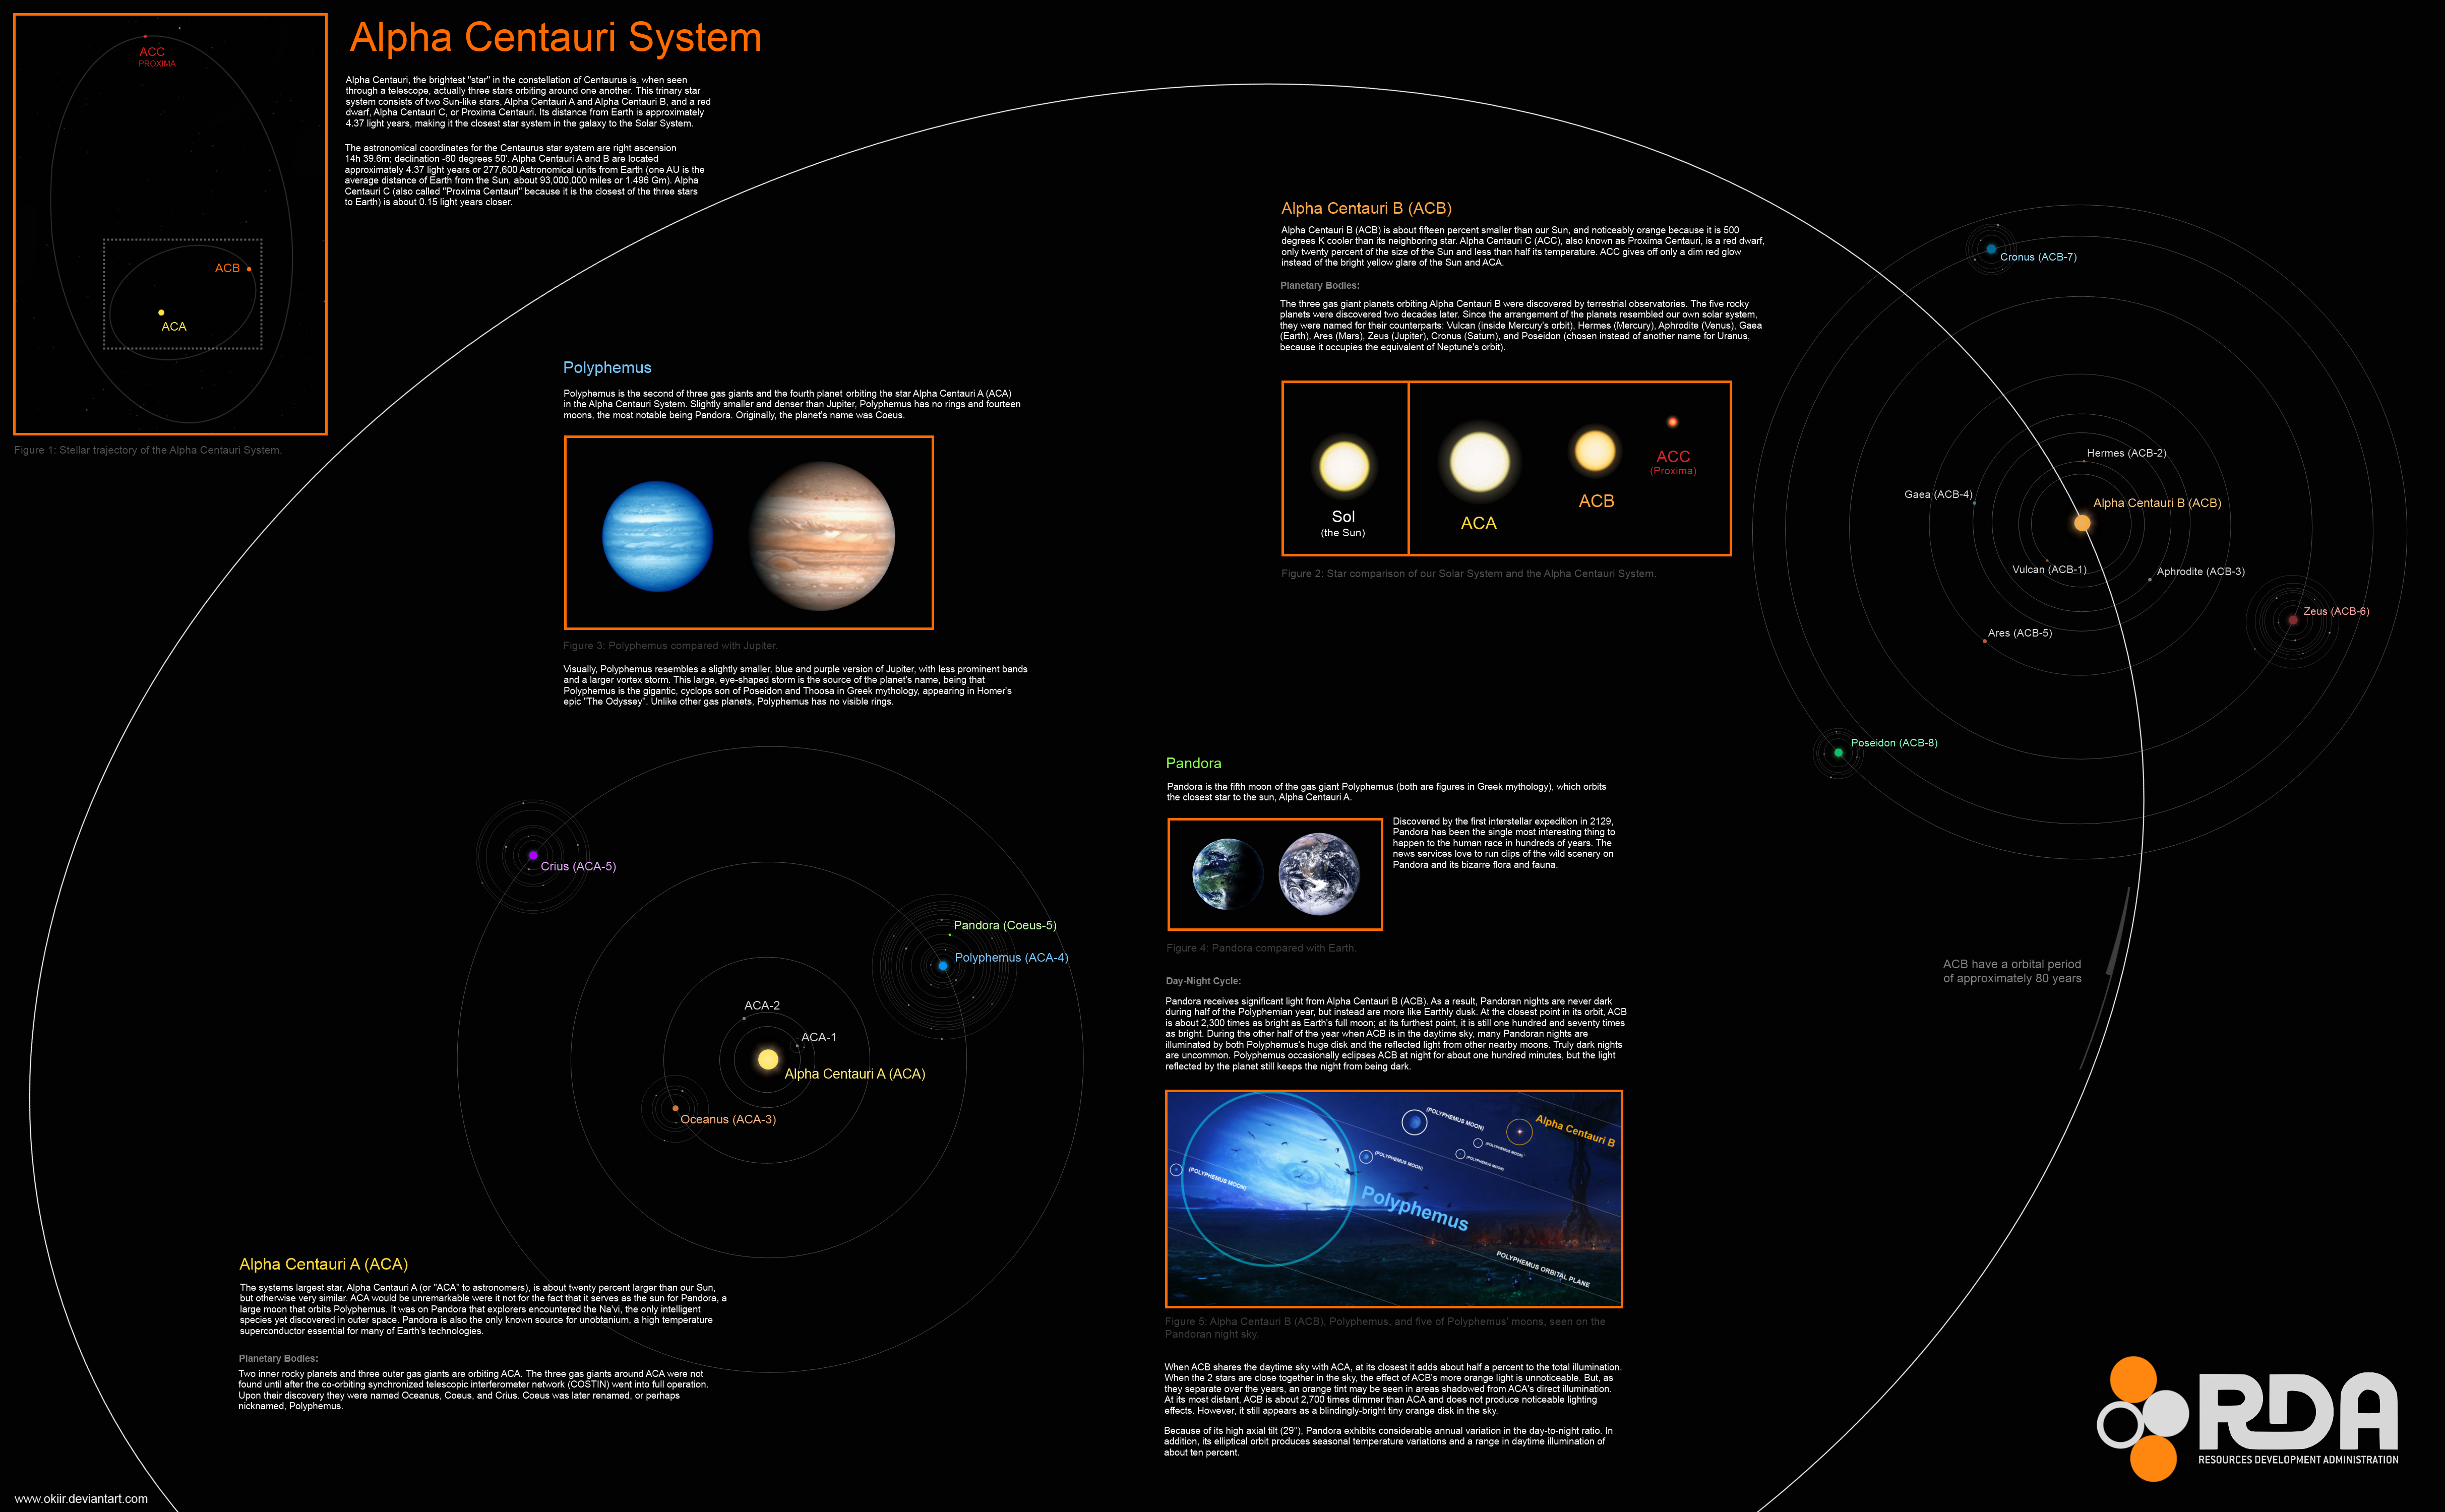 AVATAR: The Alpha Centauri System by okiir on DeviantArt: okiir.deviantart.com/art/AVATAR-The-Alpha-Centauri-System-362246877